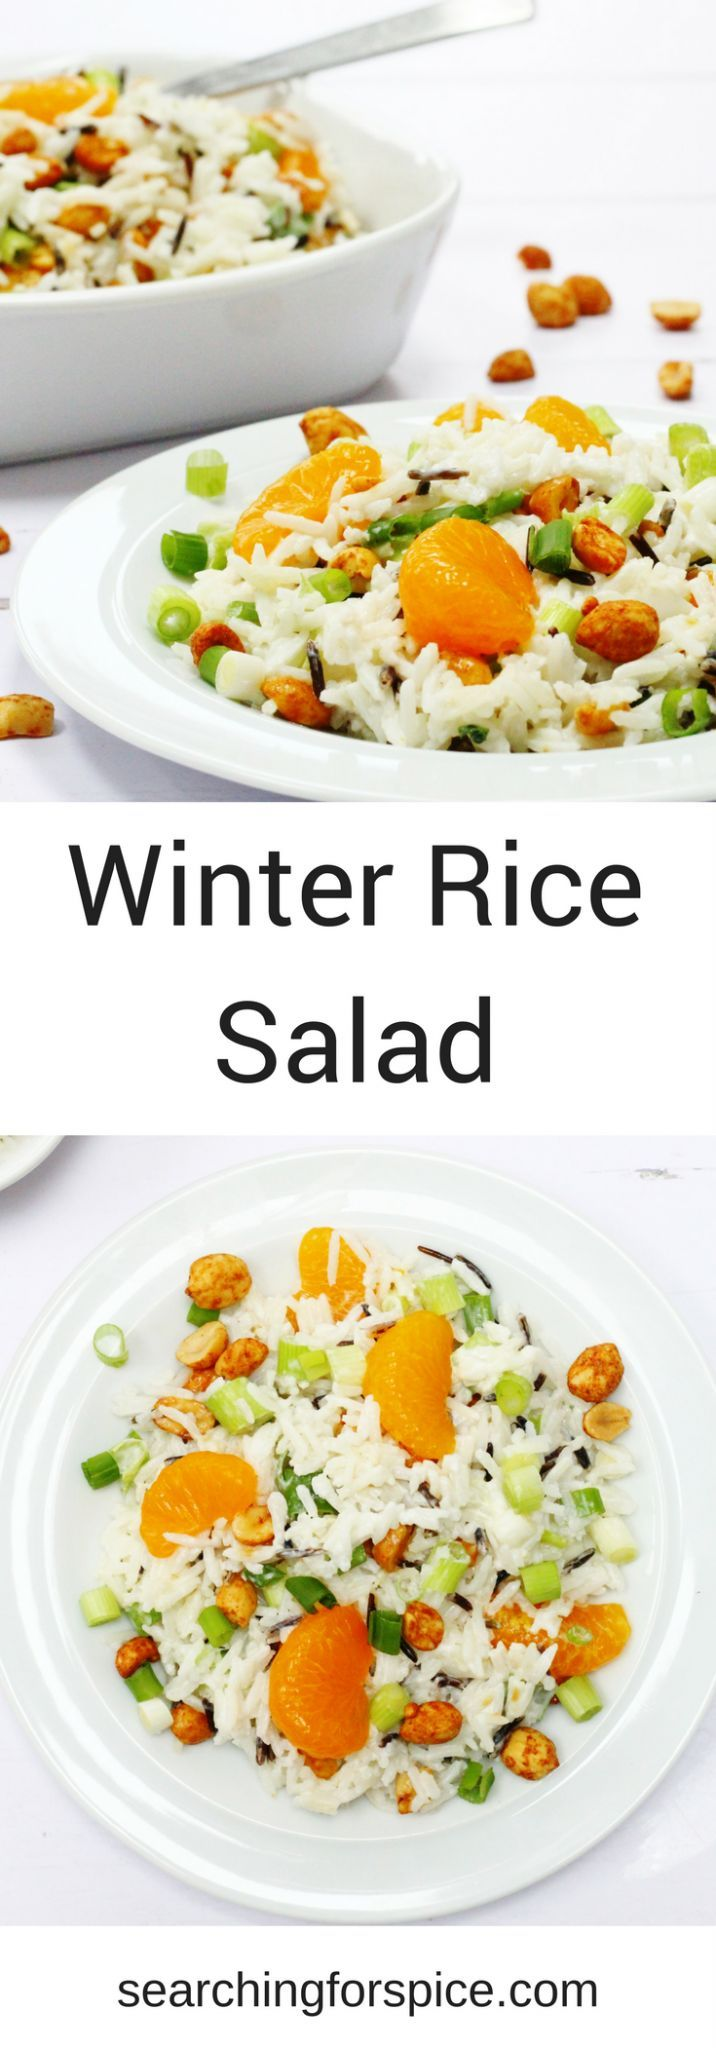 Winter rice salad with dry roasted peanuts, mandarins and spring onions  #salad #ricesalad #recipe #mandarinoranges s #sidedish #vegetarian